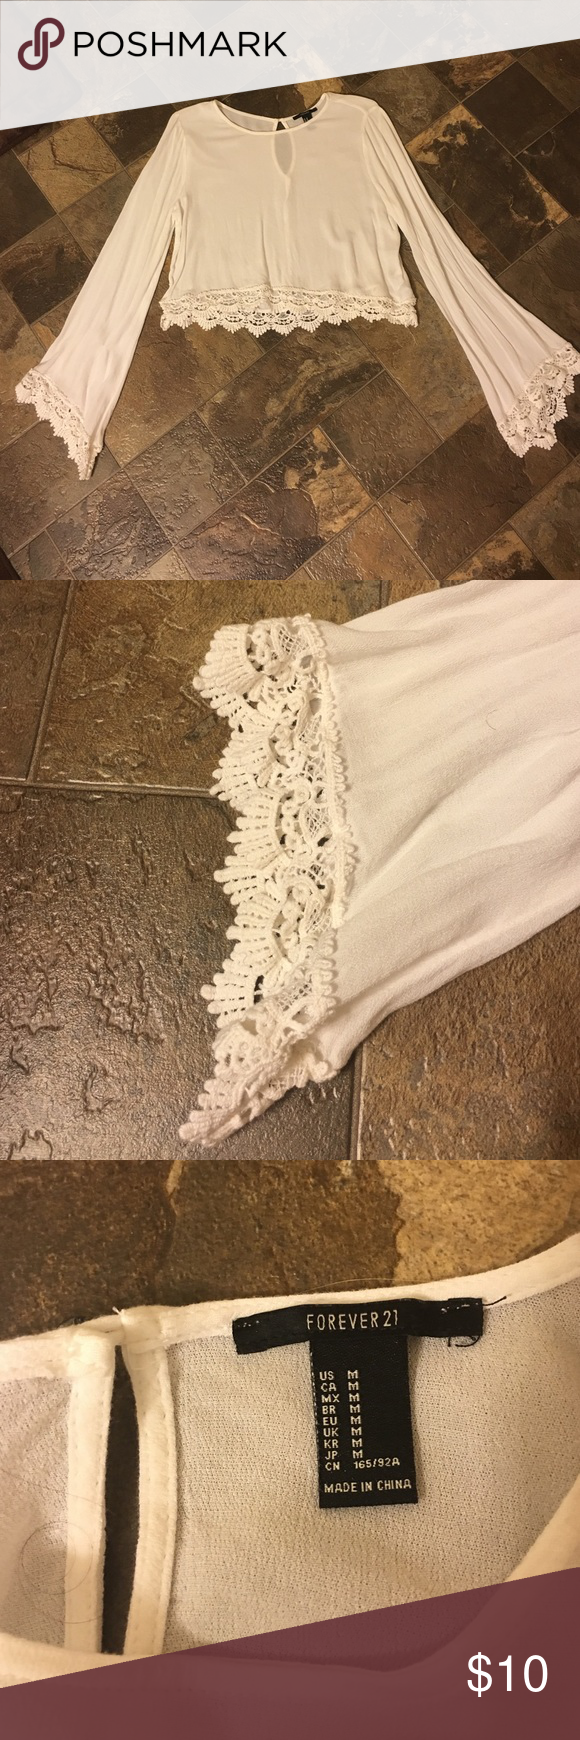 Forever 21 Crop Top with Crochet Design New - Never Worn - Cream Color Forever 21 Tops Crop Tops